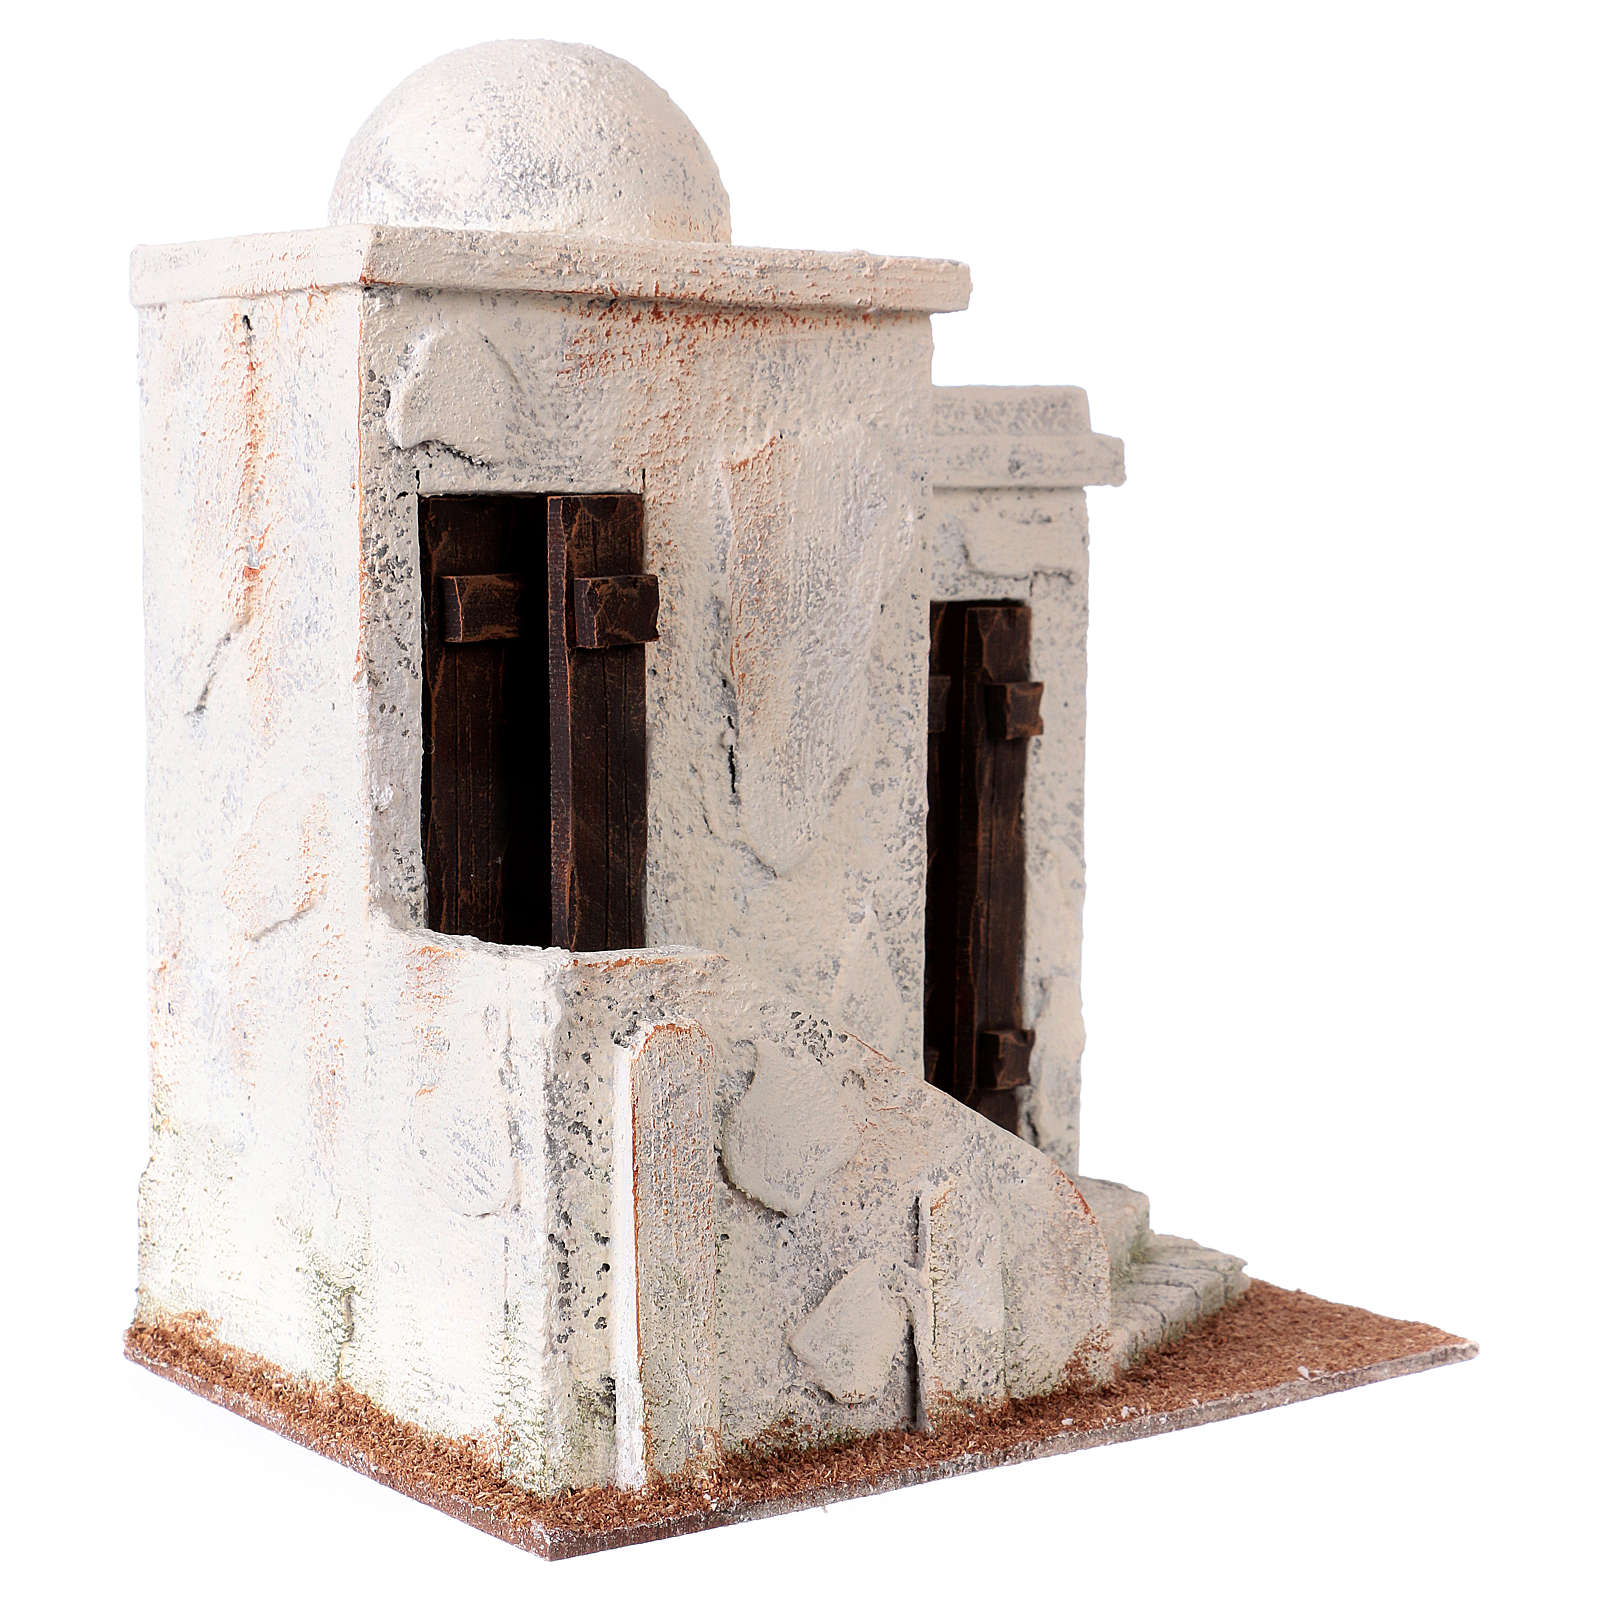 House with 2 entrances and steps Palestinian style 25x20x15 cm, for 9-10 nativity statues 4